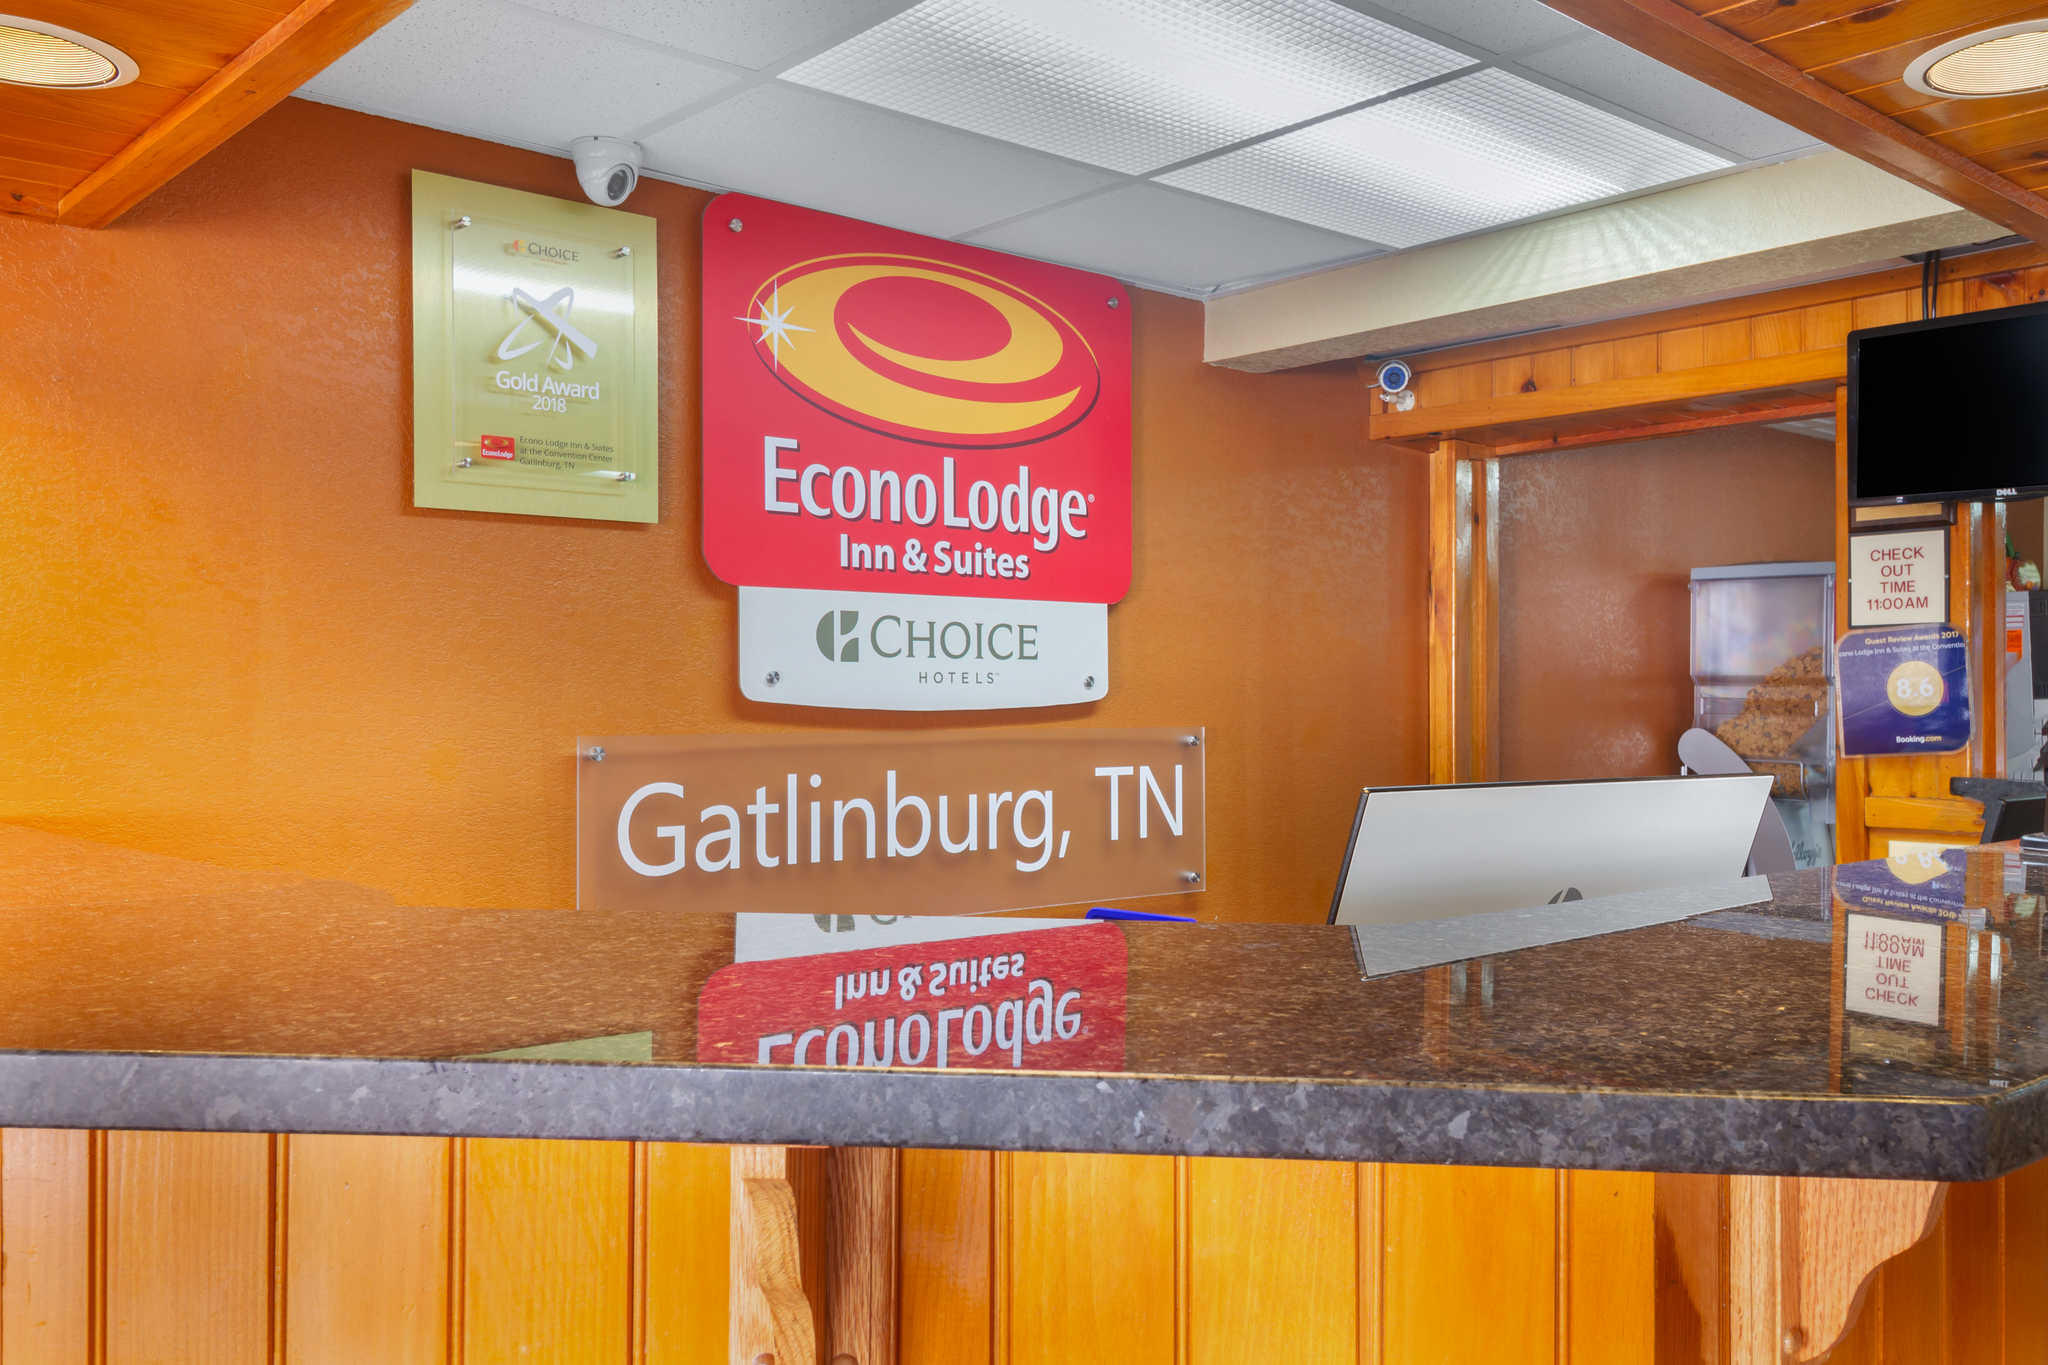 Econo Lodge Inn & Suites at the Convention Center image 8